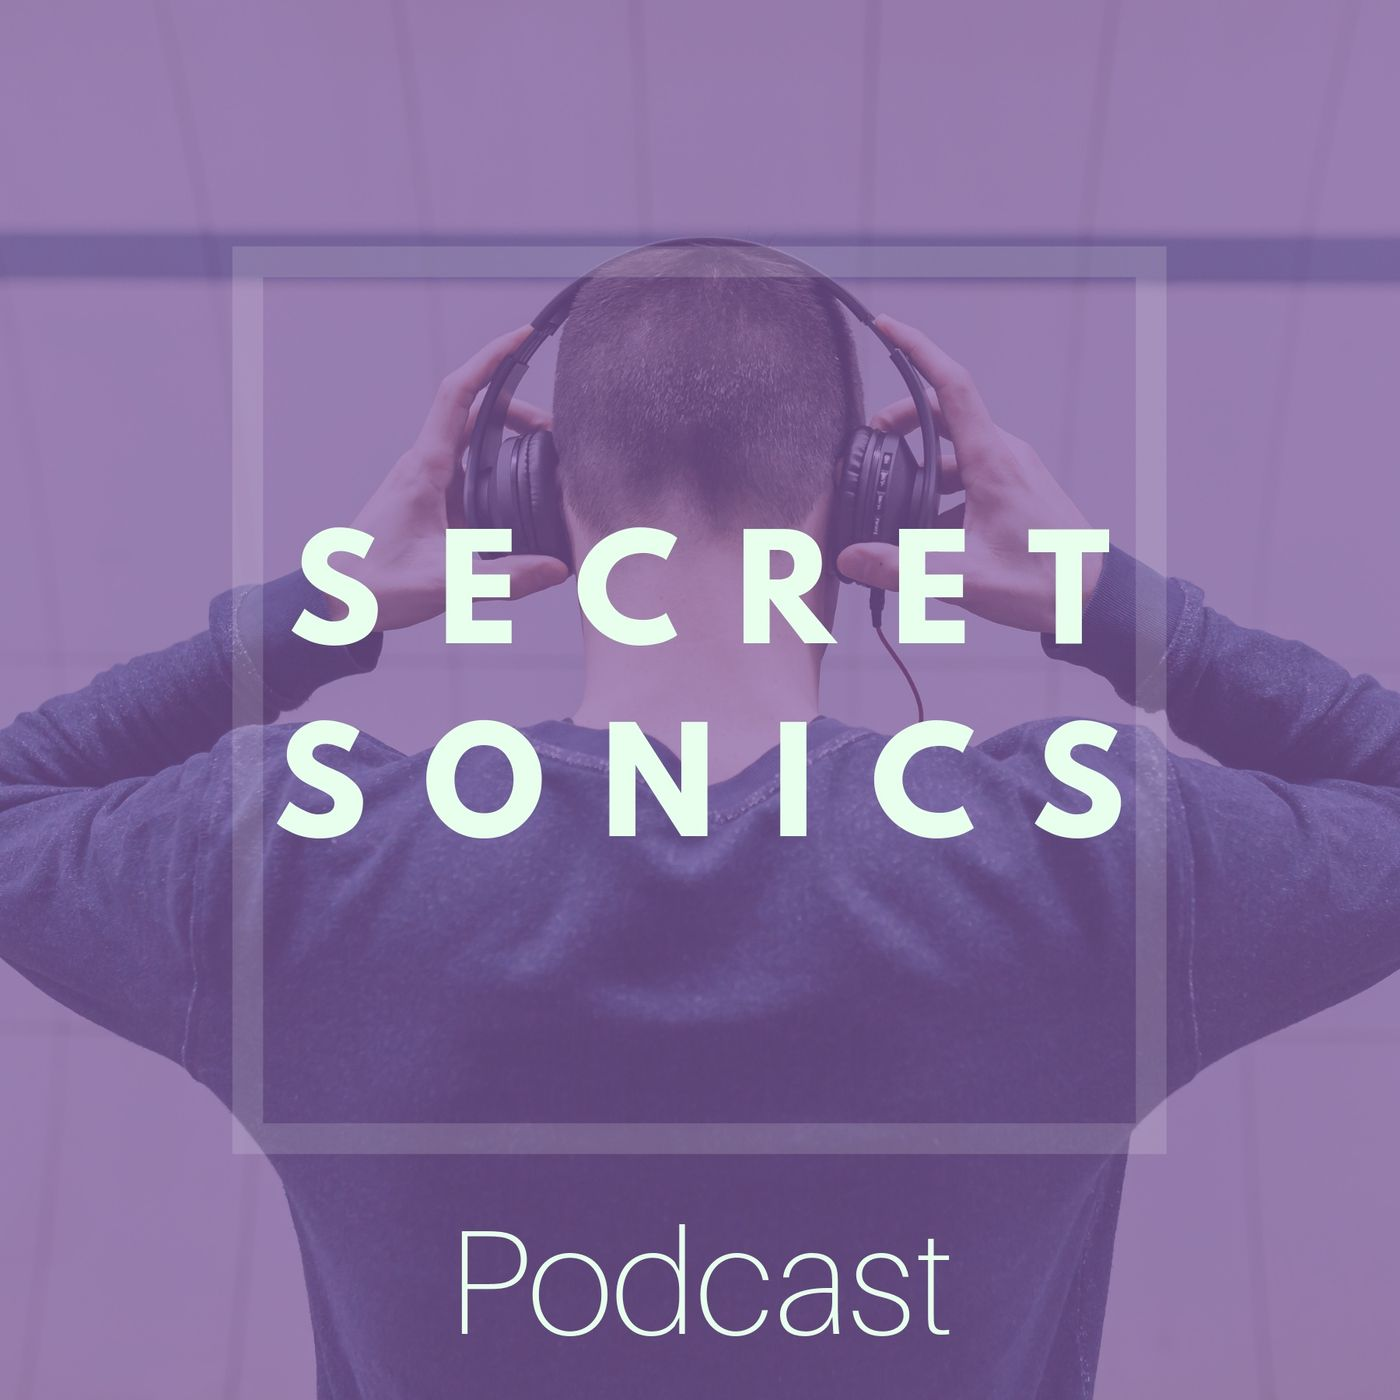 Secret Sonics 009 - Jonathan Friedlander